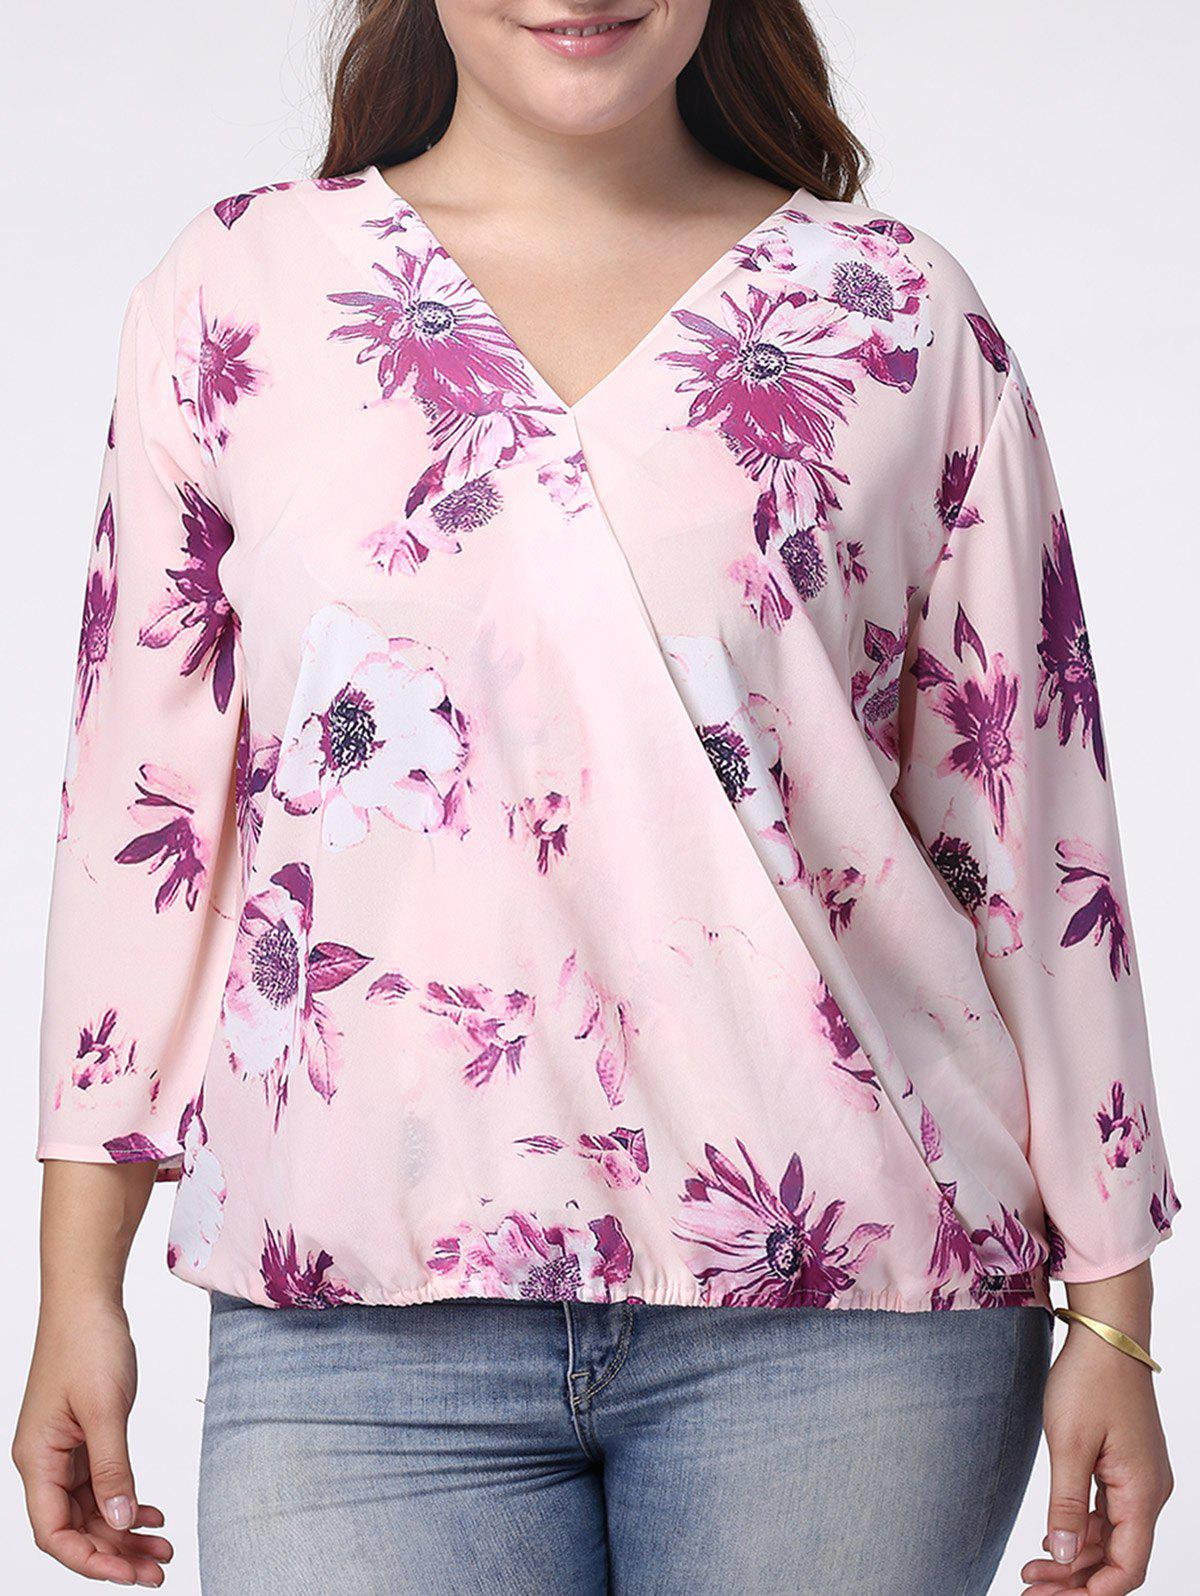 Sweet V-Neck 3/4 Sleeve Floral Print Wrapped Blouse For Women - LIGHT PURPLE XL